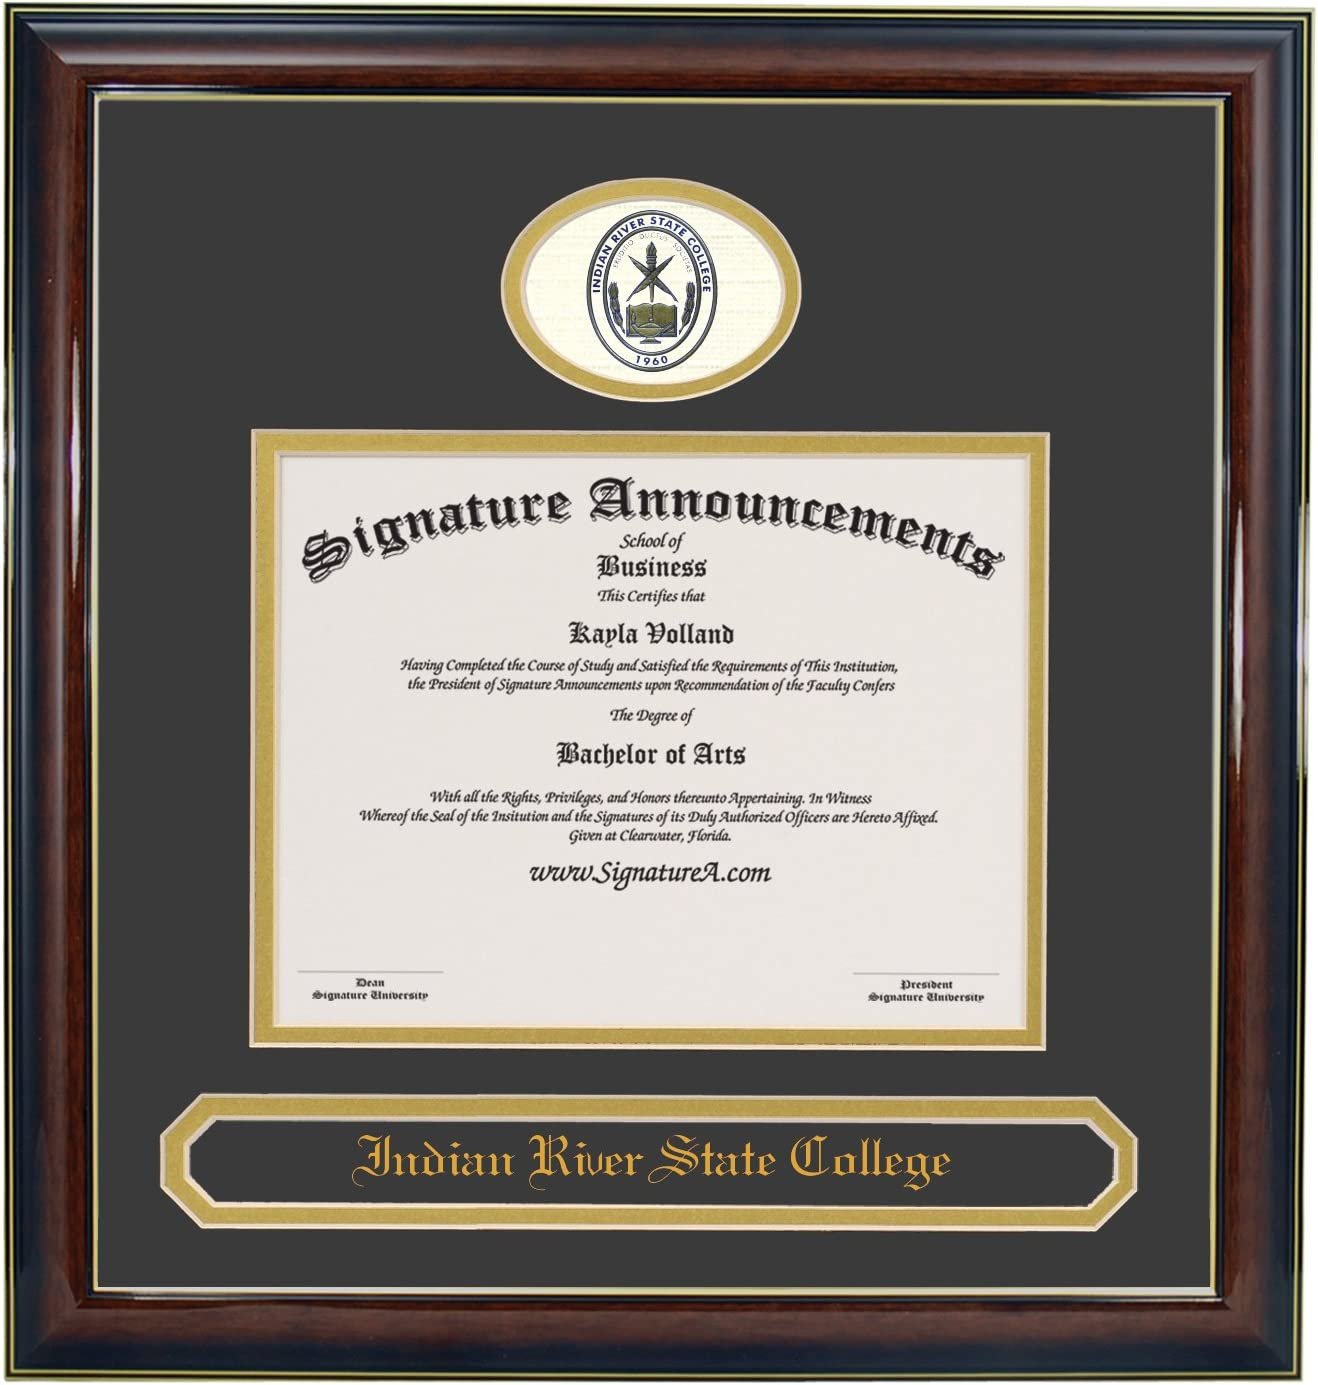 Sculpted Foil Seal Graduation Diploma Frame 16 x 16 Gold Accent Gloss Mahogany Signature Announcements Indian-River-State-College Undergraduate